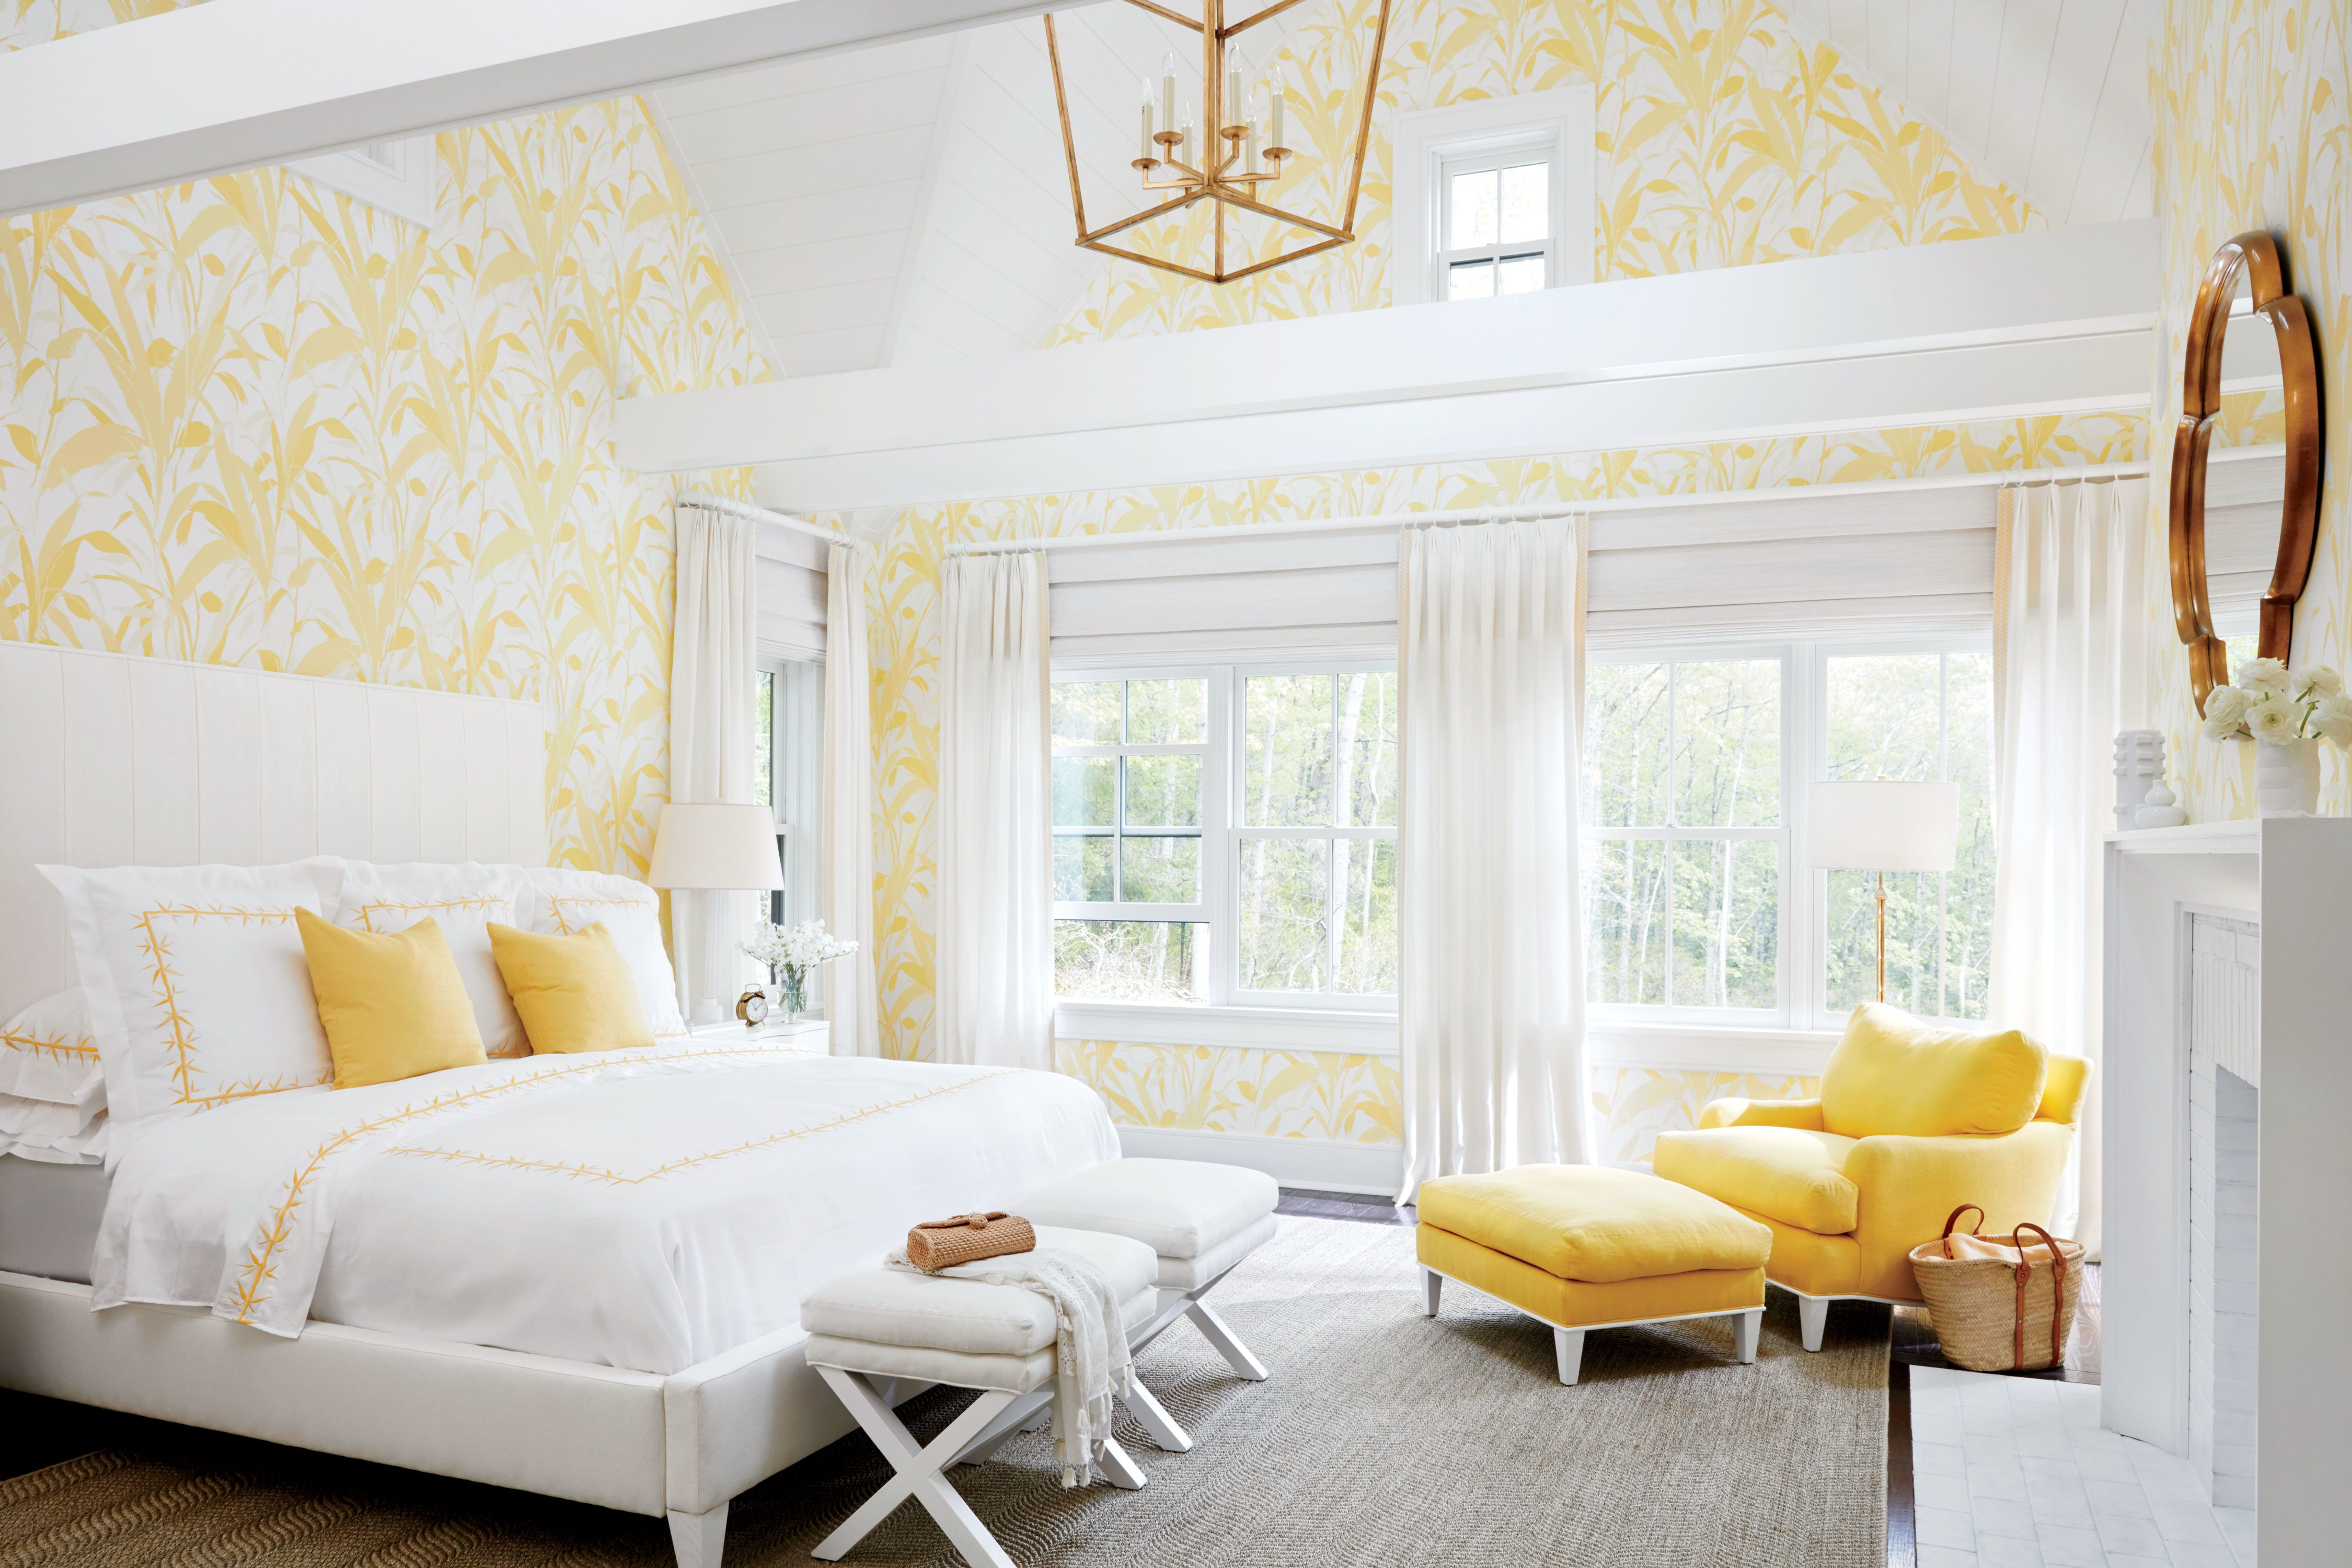 The Master Bedroom Is A Grand 19 Feet By 21 Feet With A Soaring 18 Foot Cathedral Ceiling So Balducci Yellow Bedroom Decor Yellow Bedroom White Master Bedroom